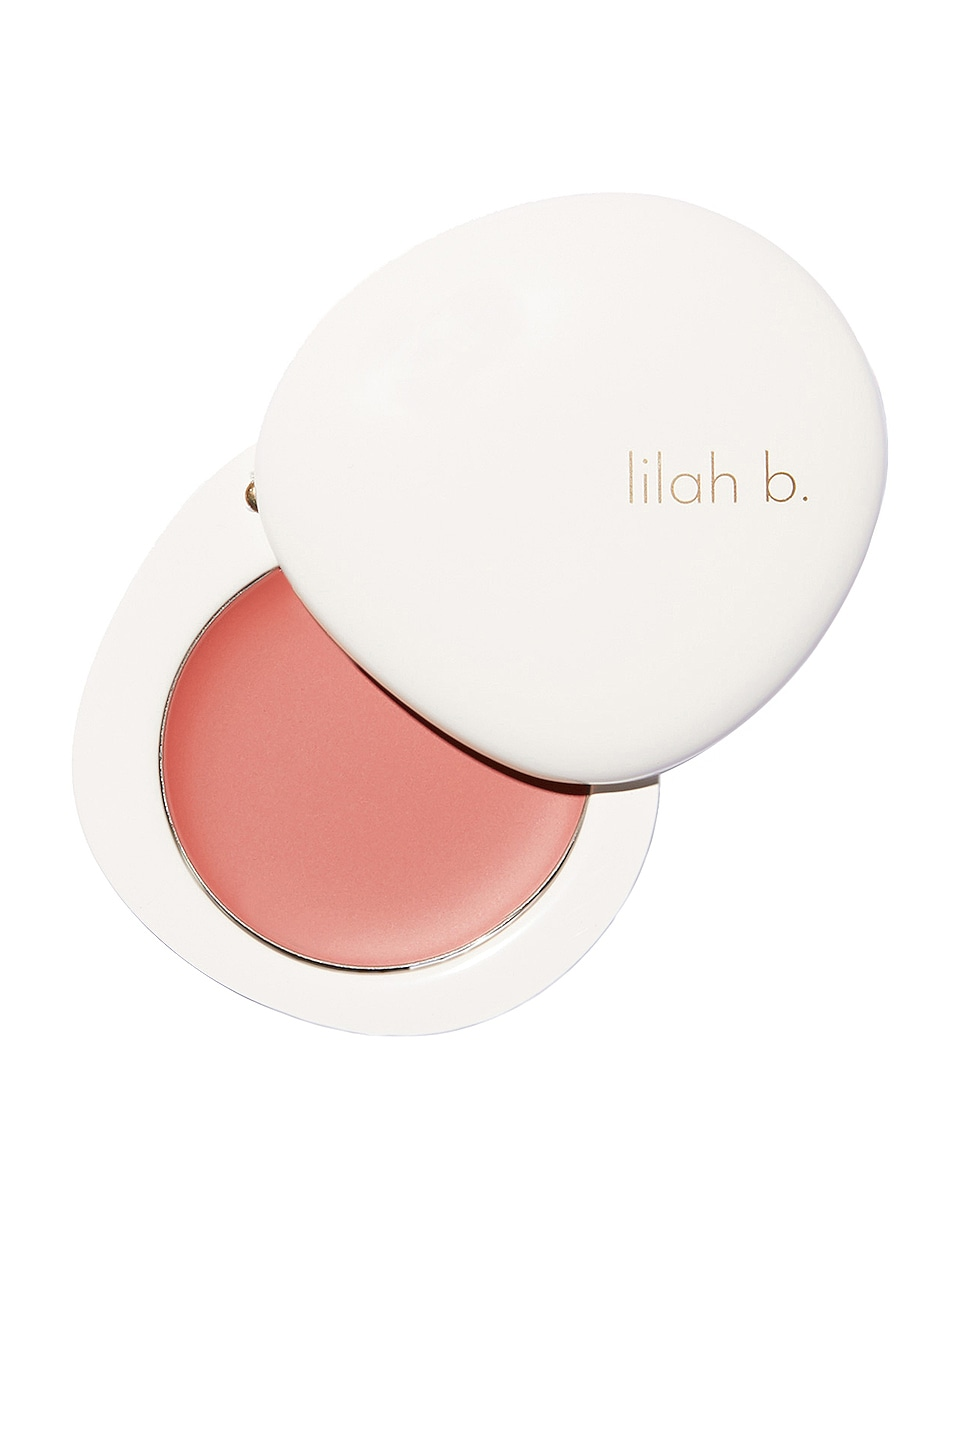 lilah b. Divine Duo Lip & Cheek in b. true